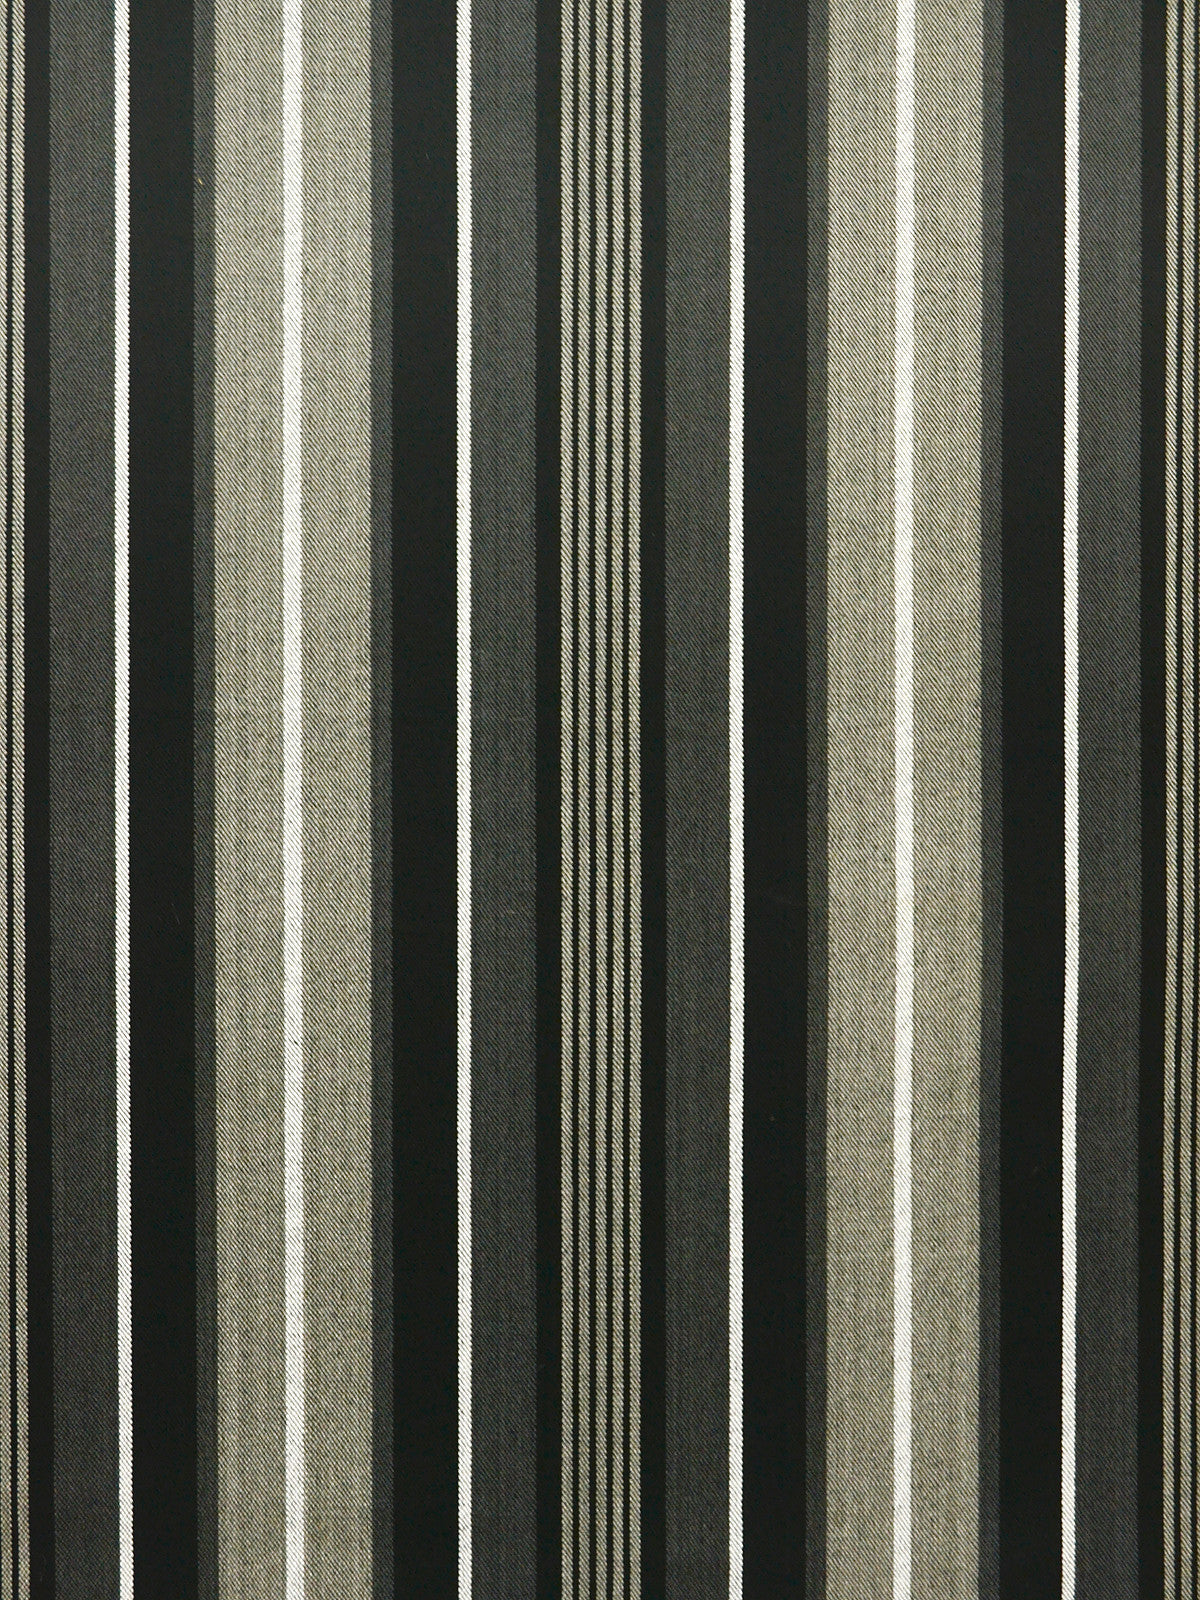 charcoal striped upholstery fabrics, online fabric stores, charcoal stripes